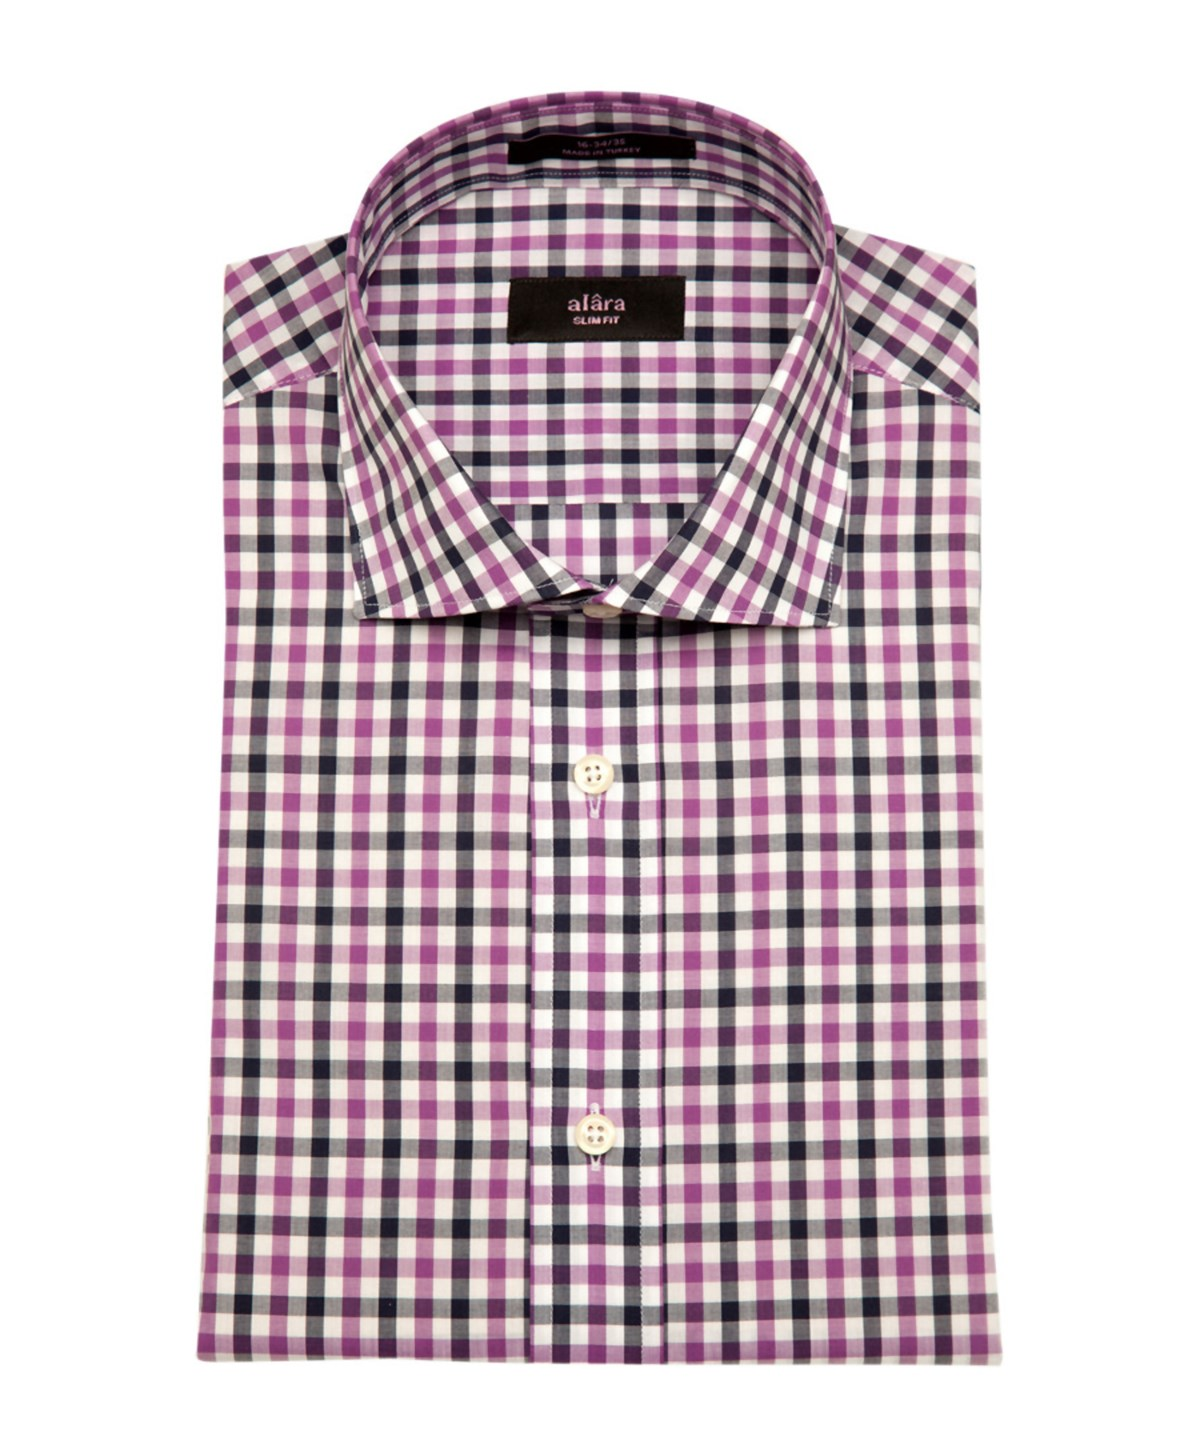 ALARA Alara Slim Fit Dress Shirt'